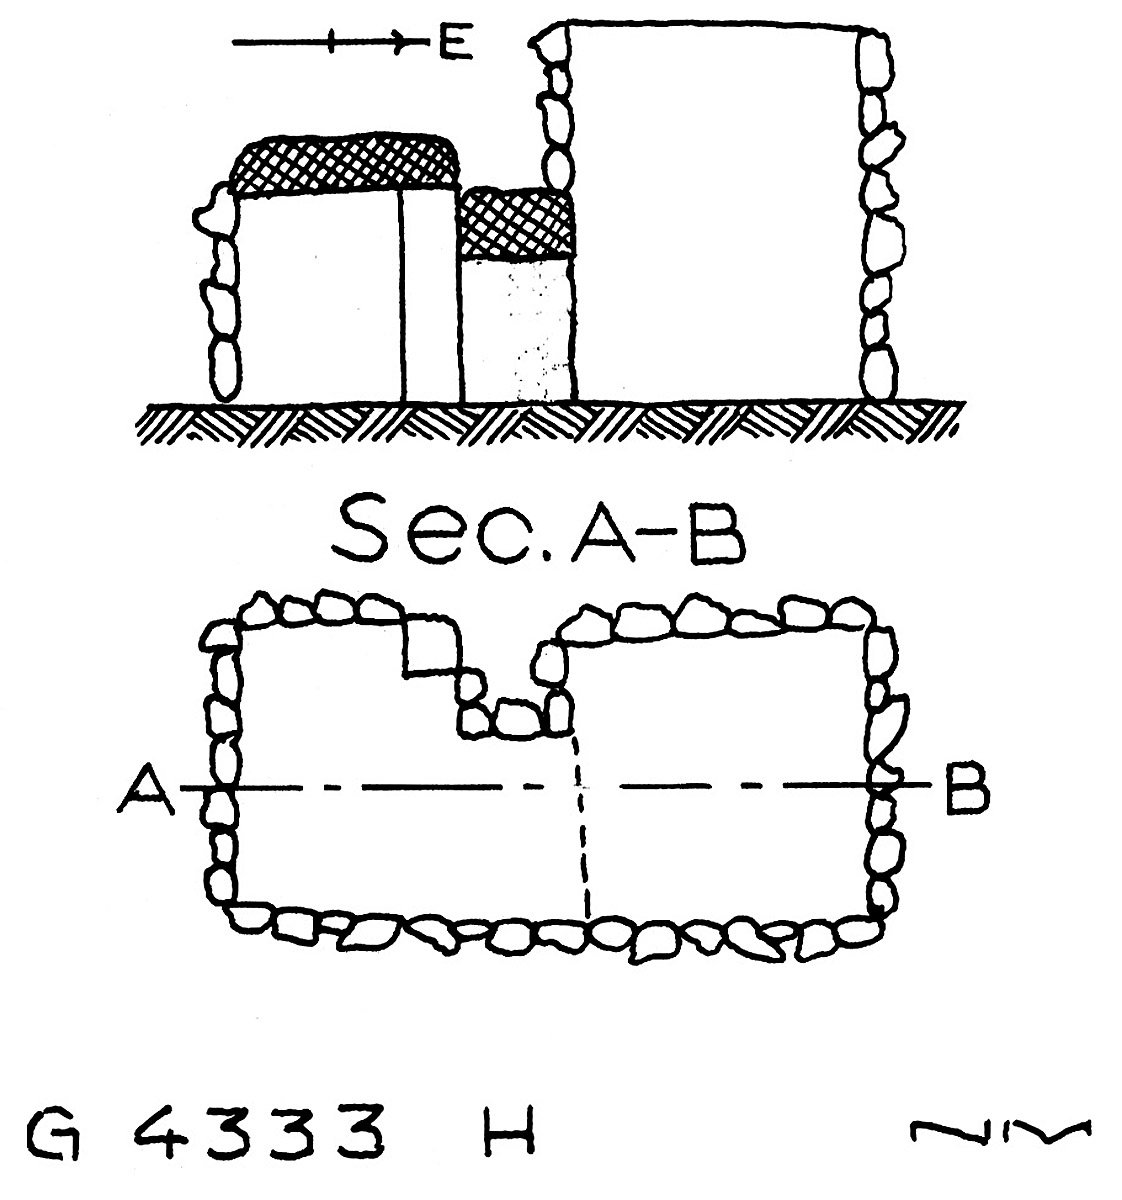 Maps and plans: G 4333, Shaft H